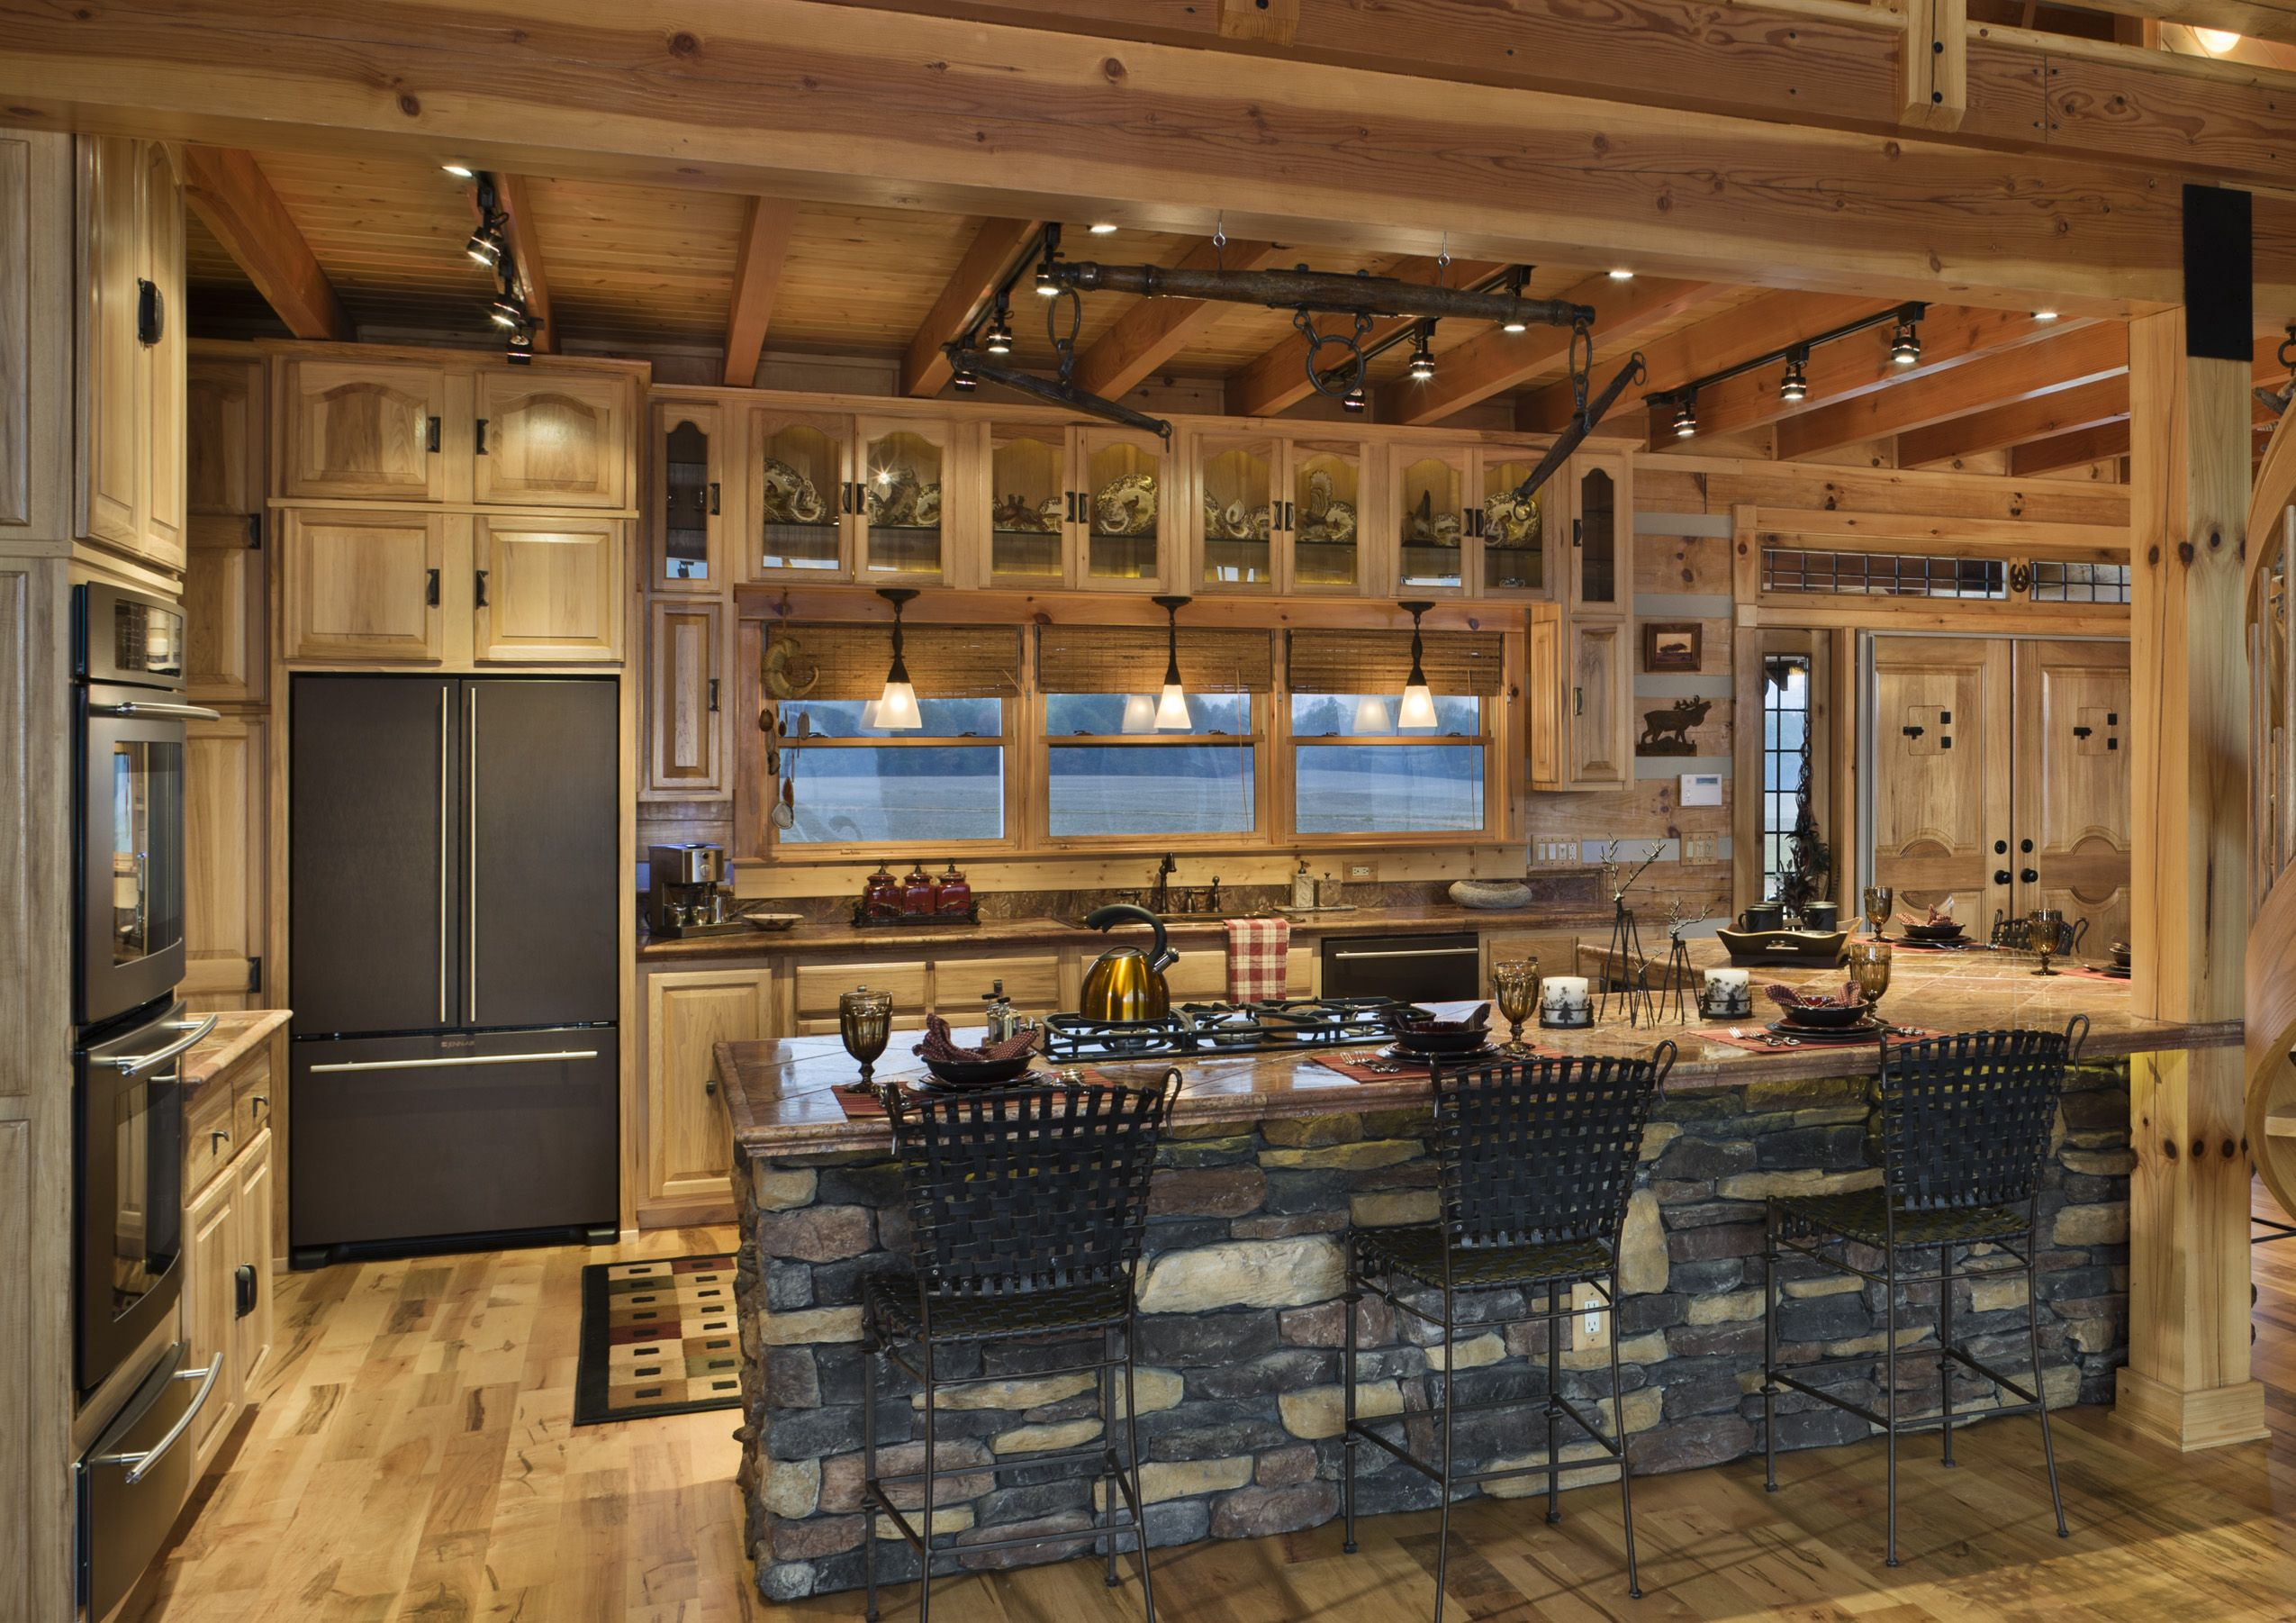 Pin By Pam Erwin On Kitchen Ideas Log Home Kitchens Log Cabin